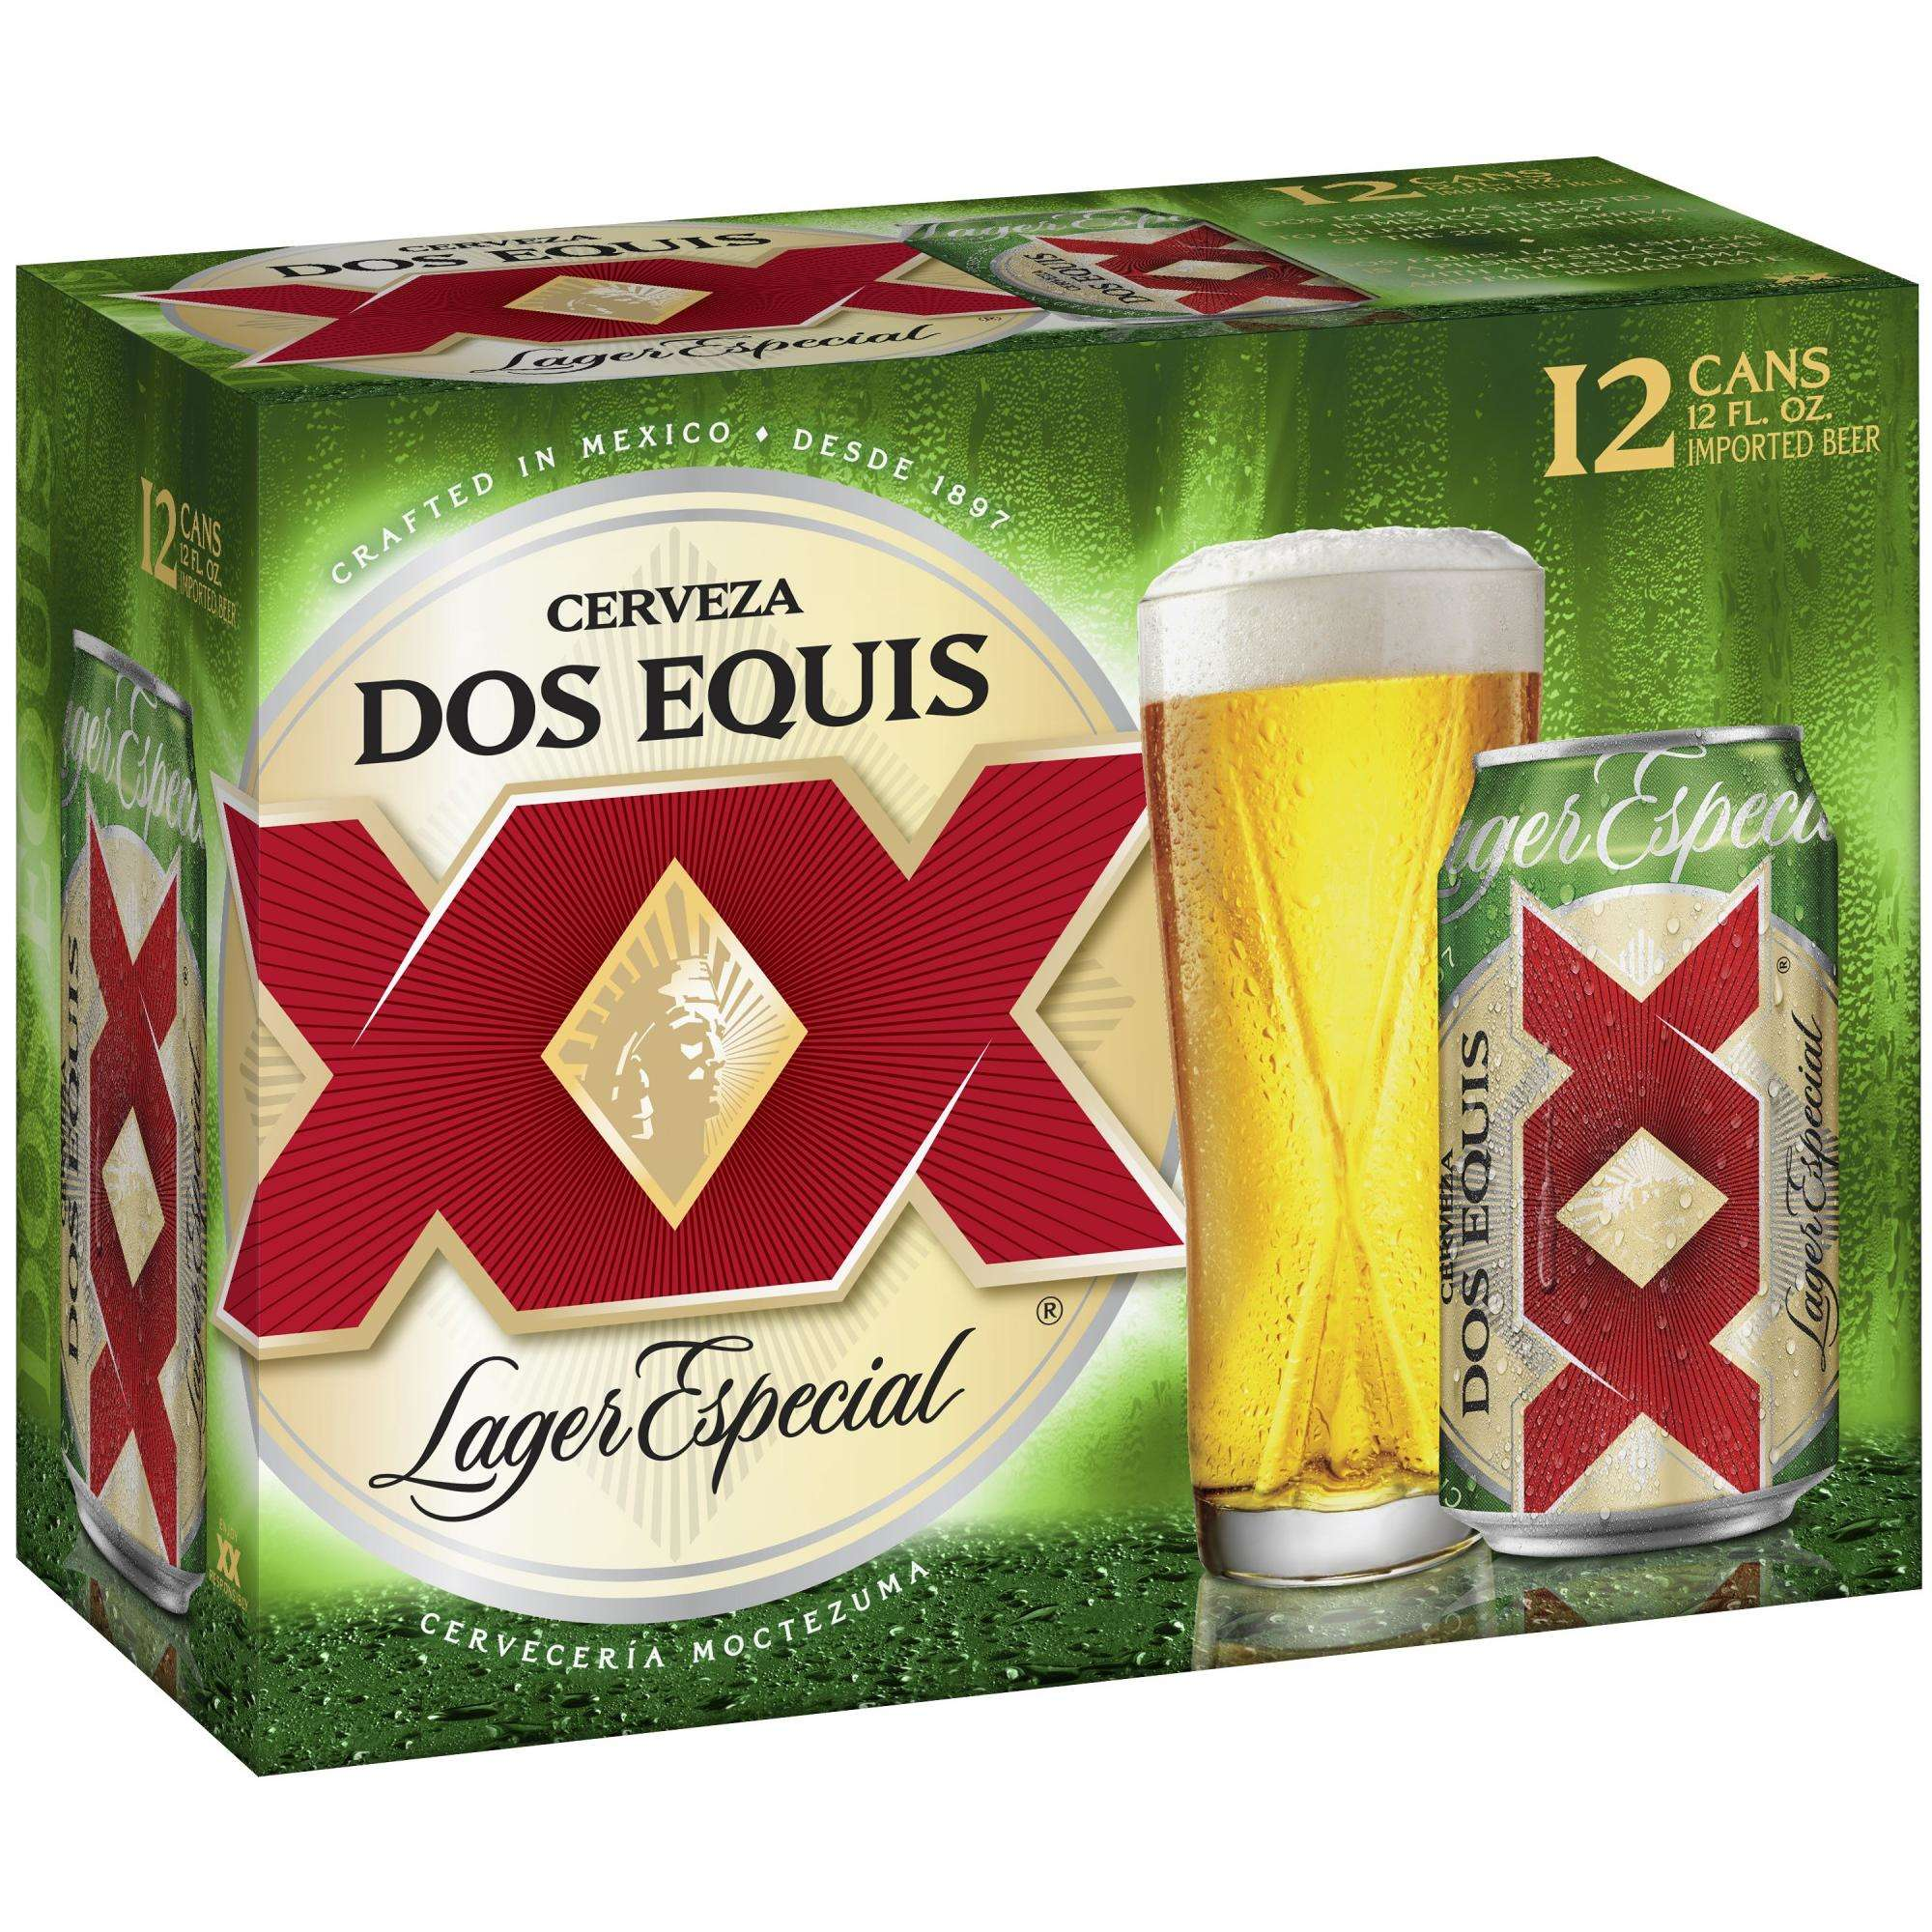 Cerveza Dos Equis Lager Especial Mexican Beer, 12-Pack 12 Oz. Cans